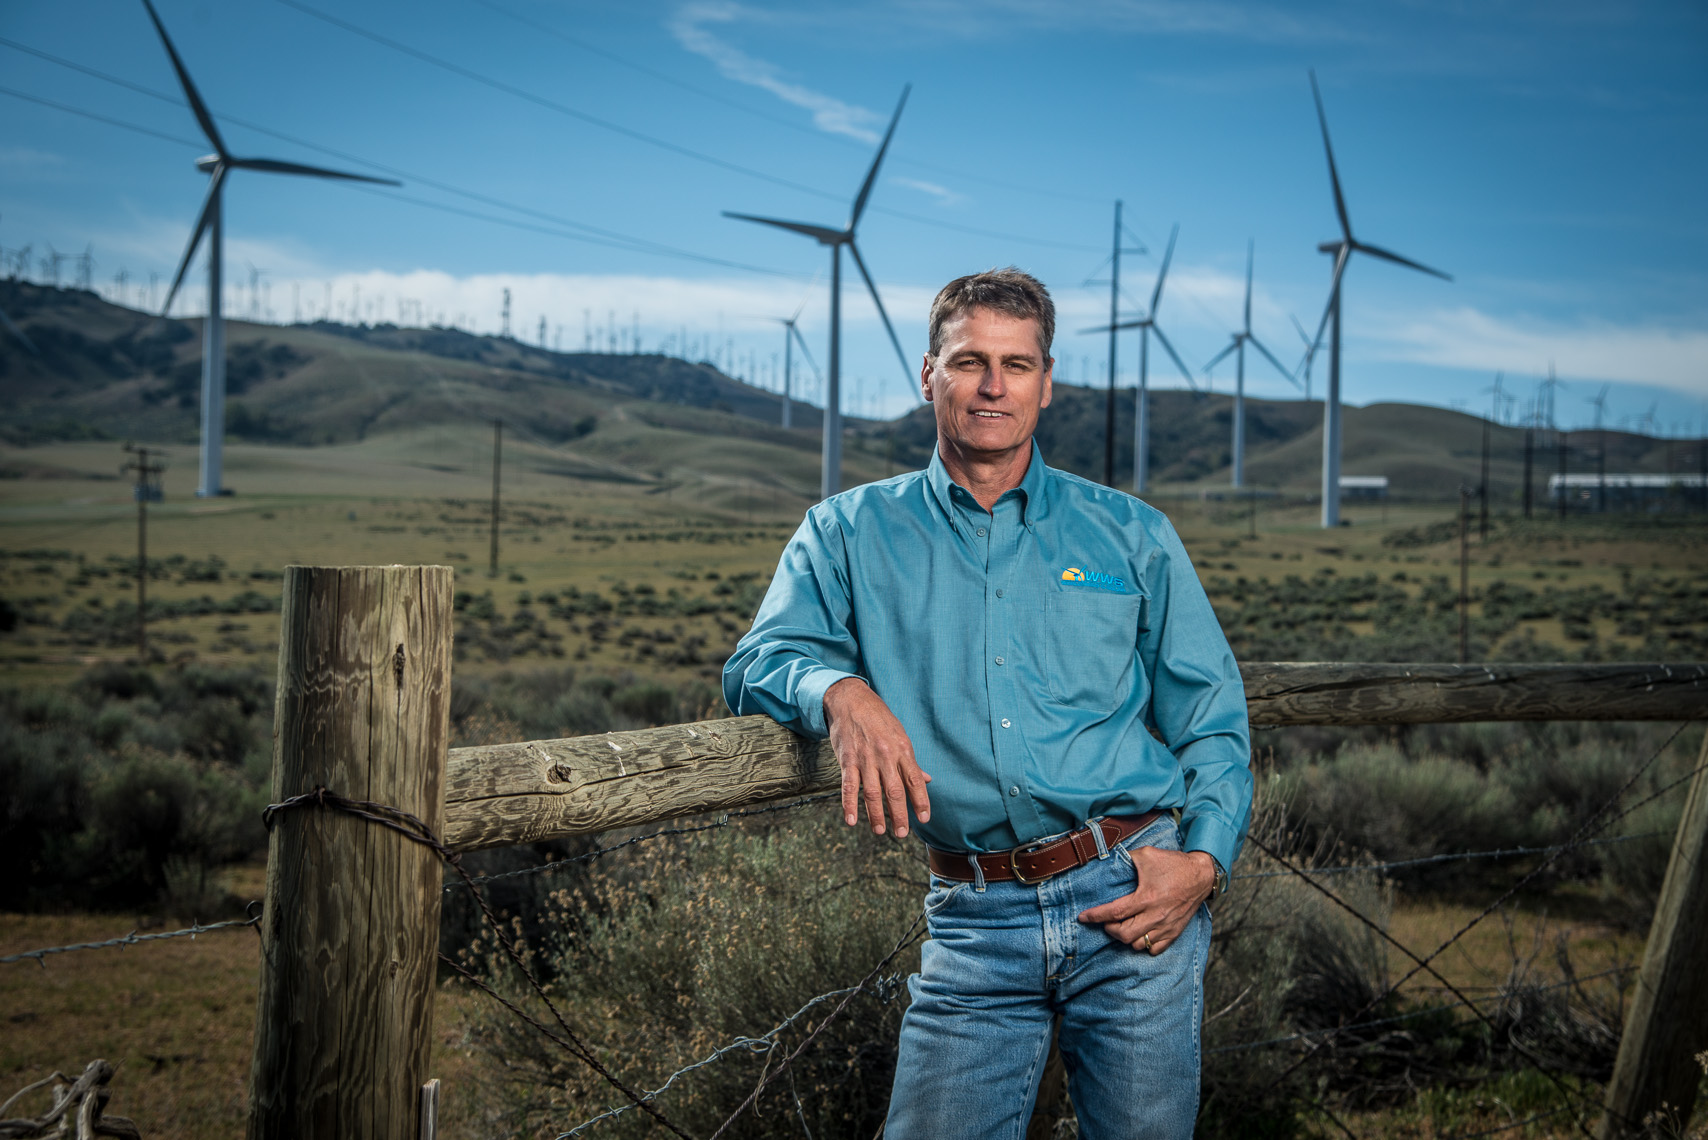 Clean Energy Executive Photographer | World Wind and Solar Services